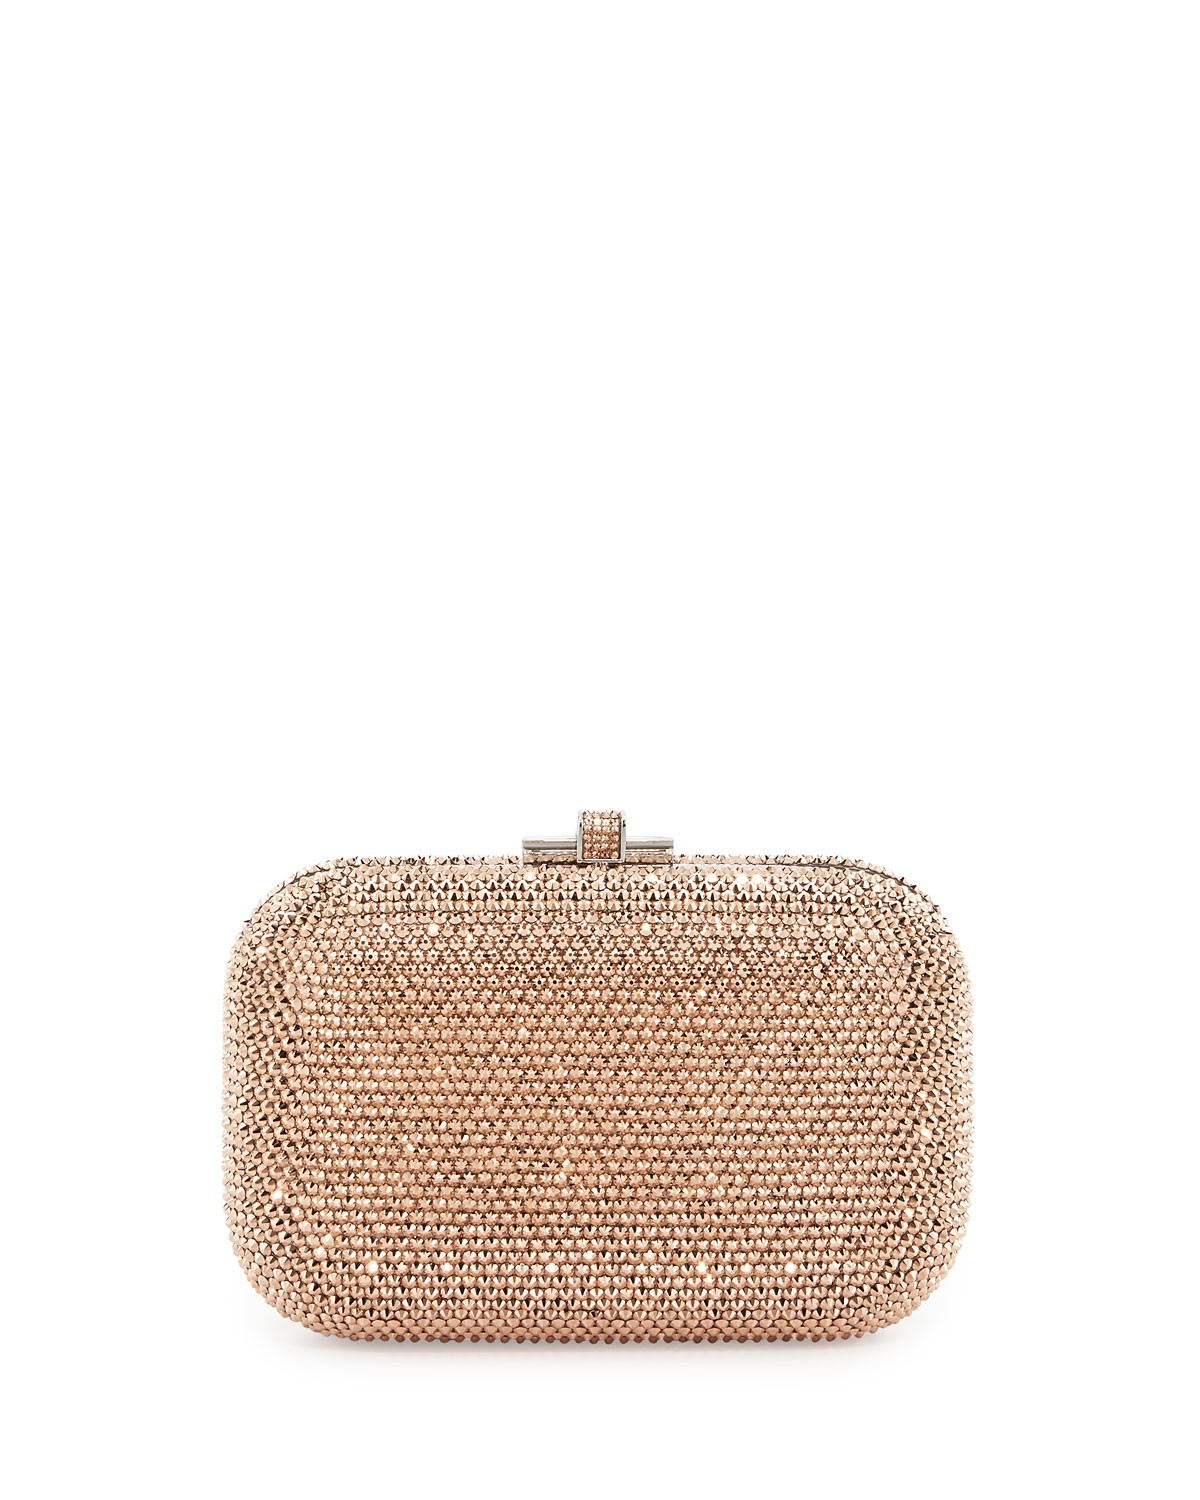 Crystal Slide-Lock Clutch Bag,Silver/Rose Gold - Judith Leiber Couture